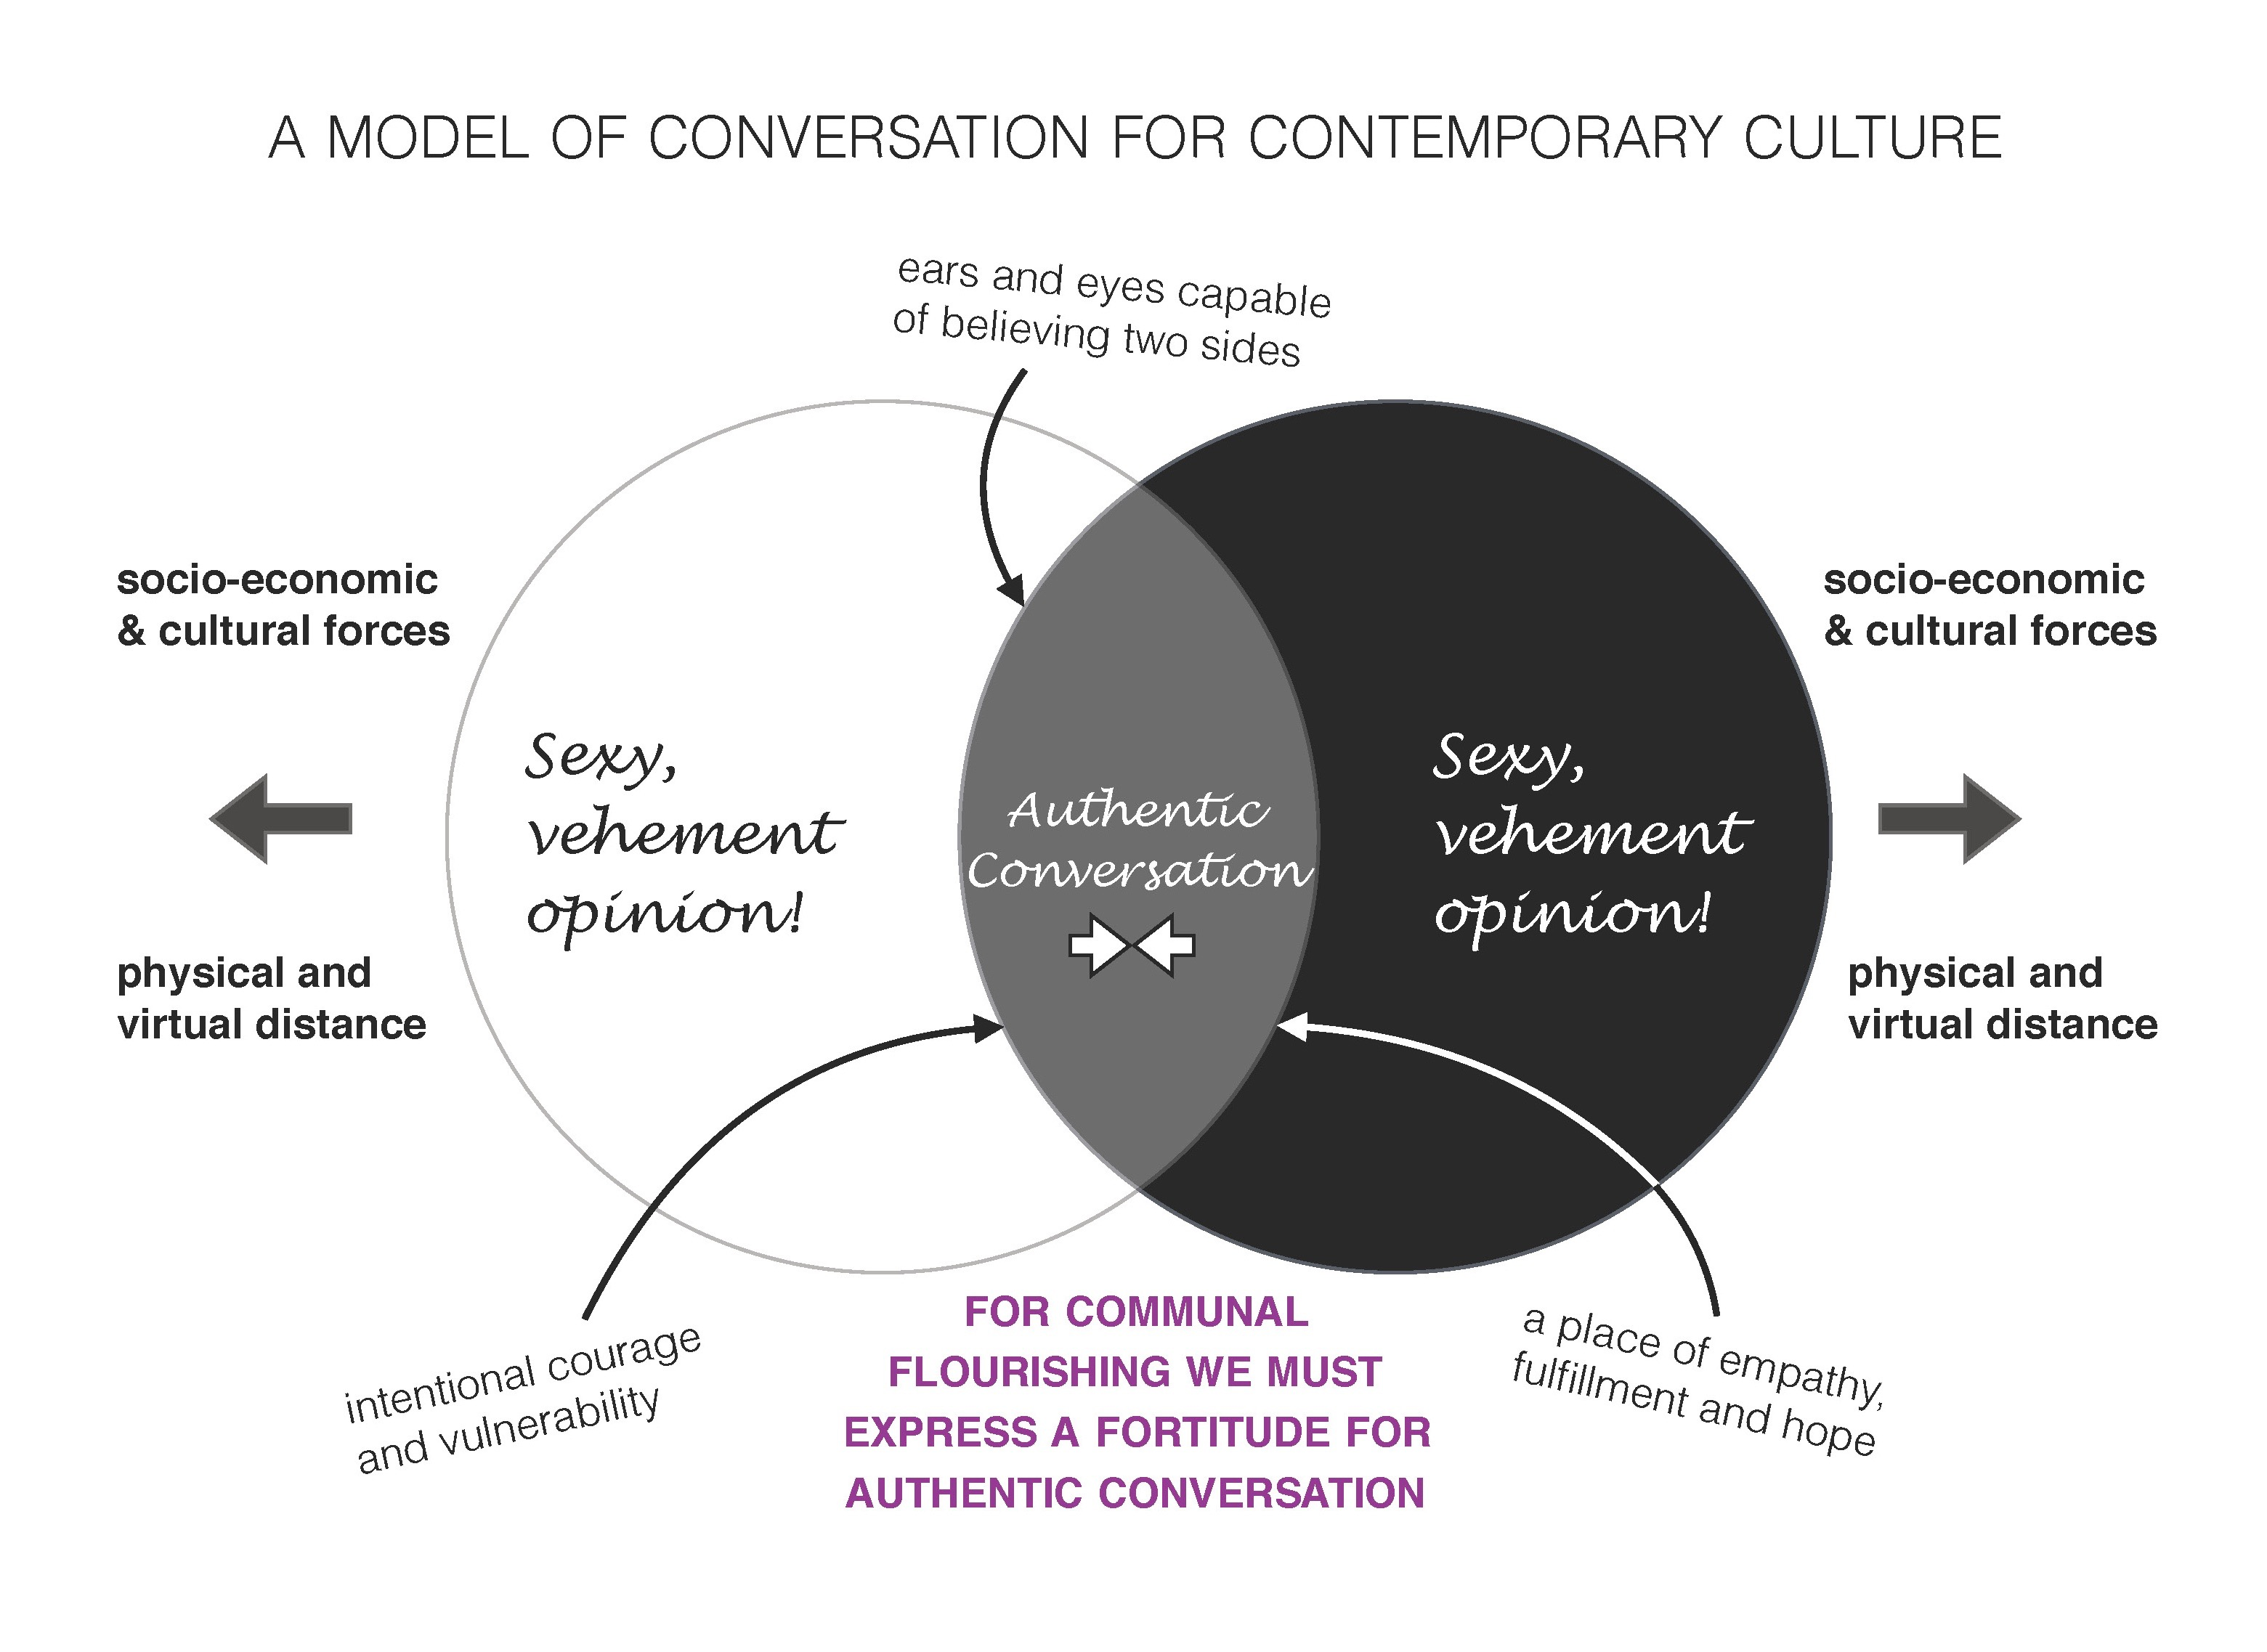 A Model of Conversation for Contemporary Culture